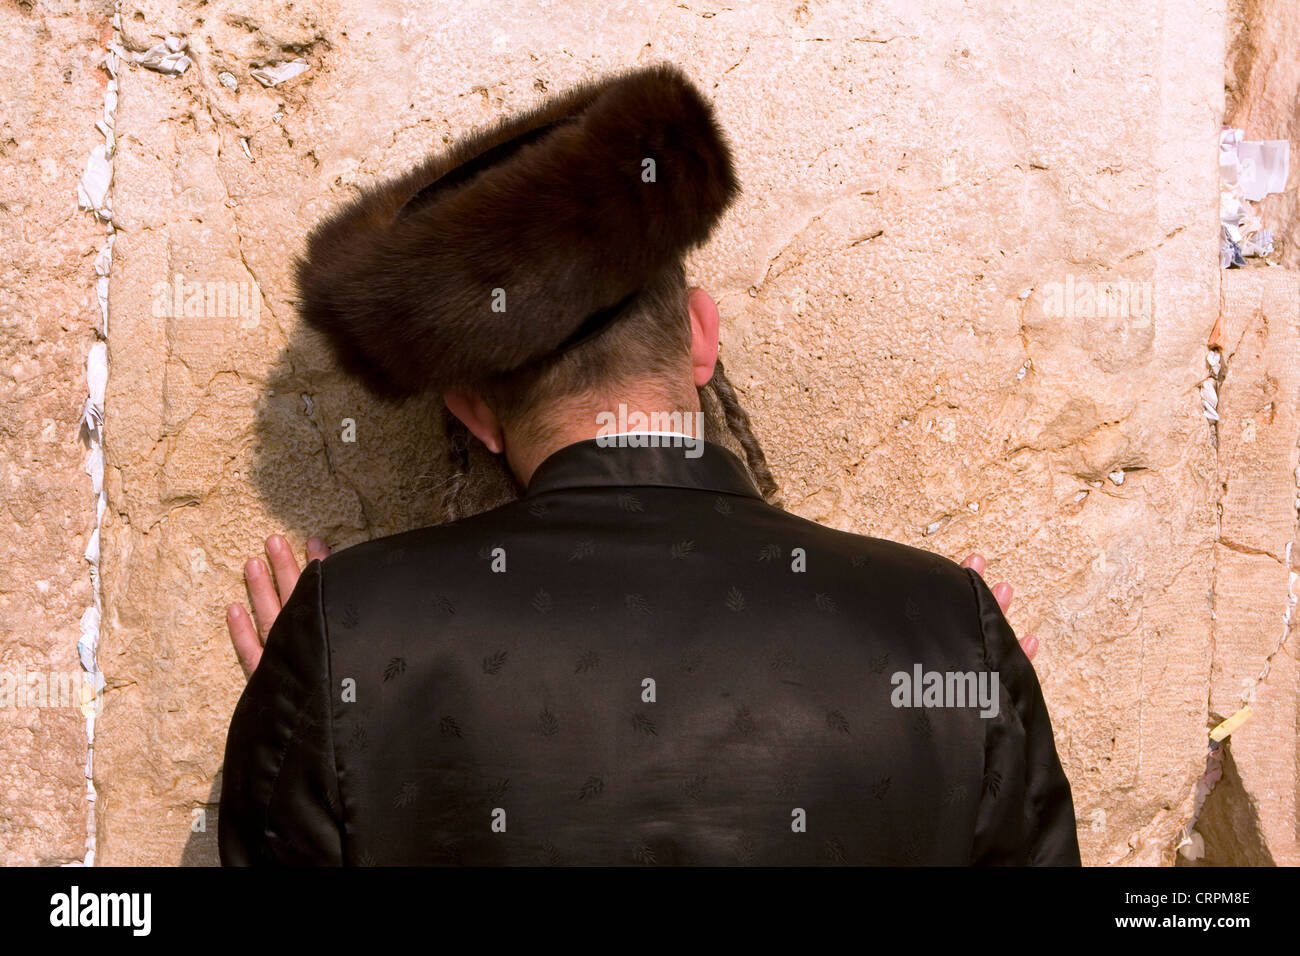 Hassidic Jew worships at the Old City's Western Wall, Jerusalem, Israel - Stock Image